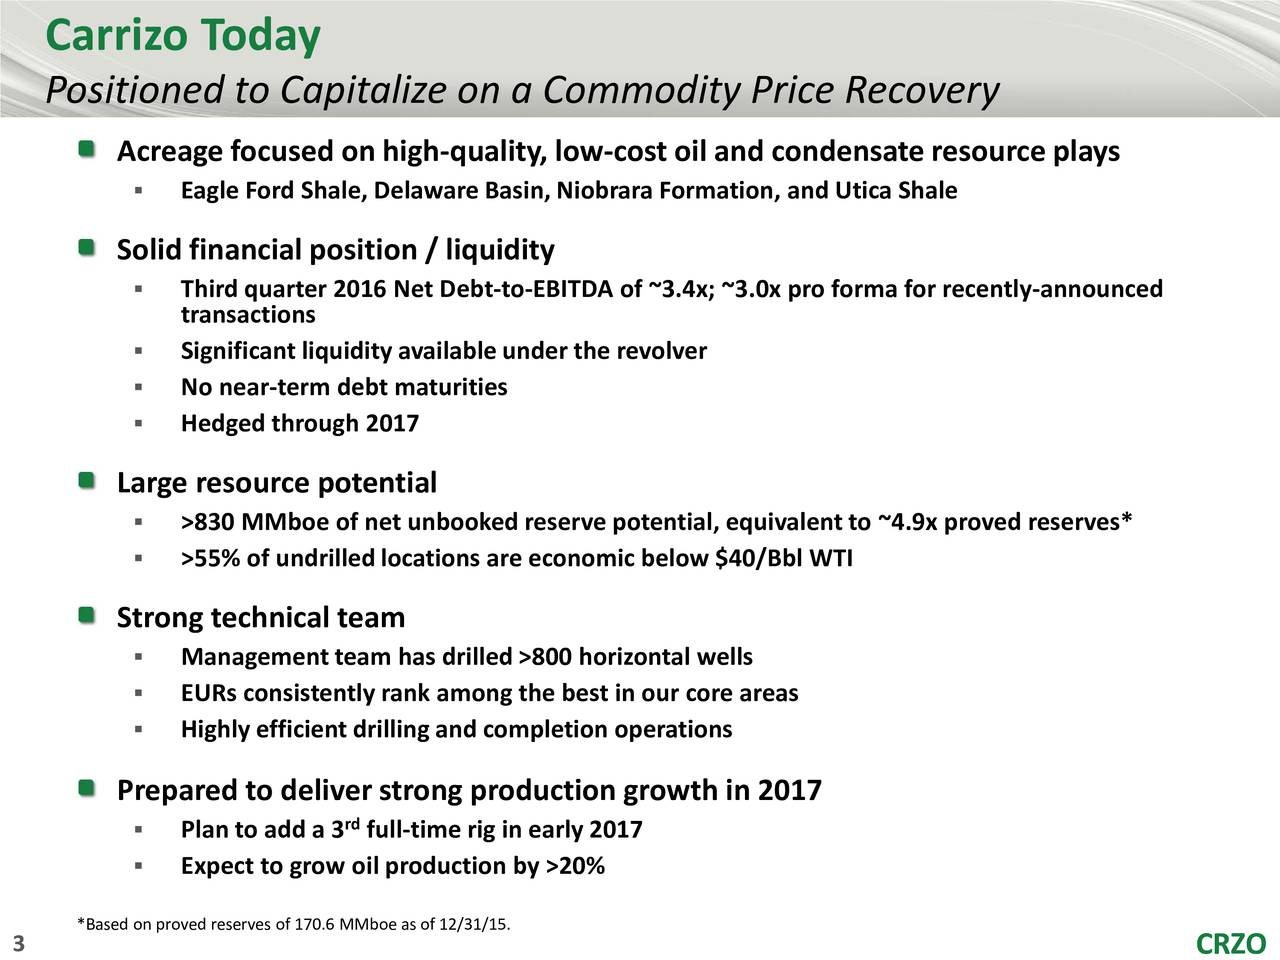 Positioned to Capitalize on a Commodity Price Recovery Acreage focused on high-quality, low-cost oil and condensate resource plays Eagle Ford Shale, Delaware Basin, Niobrara Formation, and Utica Shale Solid financial position / liquidity Third quarter 2016 Net Debt-to-EBITDA of ~3.4x; ~3.0x pro forma for recently-announced transactions Significant liquidity available under the revolver No near-term debt maturities Hedged through 2017 Large resource potential >830 MMboe of net unbooked reserve potential, equivalent to ~4.9x proved reserves* >55% of undrilledlocations are economic below $40/Bbl WTI Strong technical team Management team has drilled >800 horizontal wells EURs consistently rank among the best in our core areas Highly efficient drilling and completion operations Prepared to deliver strong production growth in 2017 Plan to add a 3 full-time rig in early 2017 Expect to grow oil production by >20% *Based on proved reserves of 170.6MMboe as of 12/31/15.